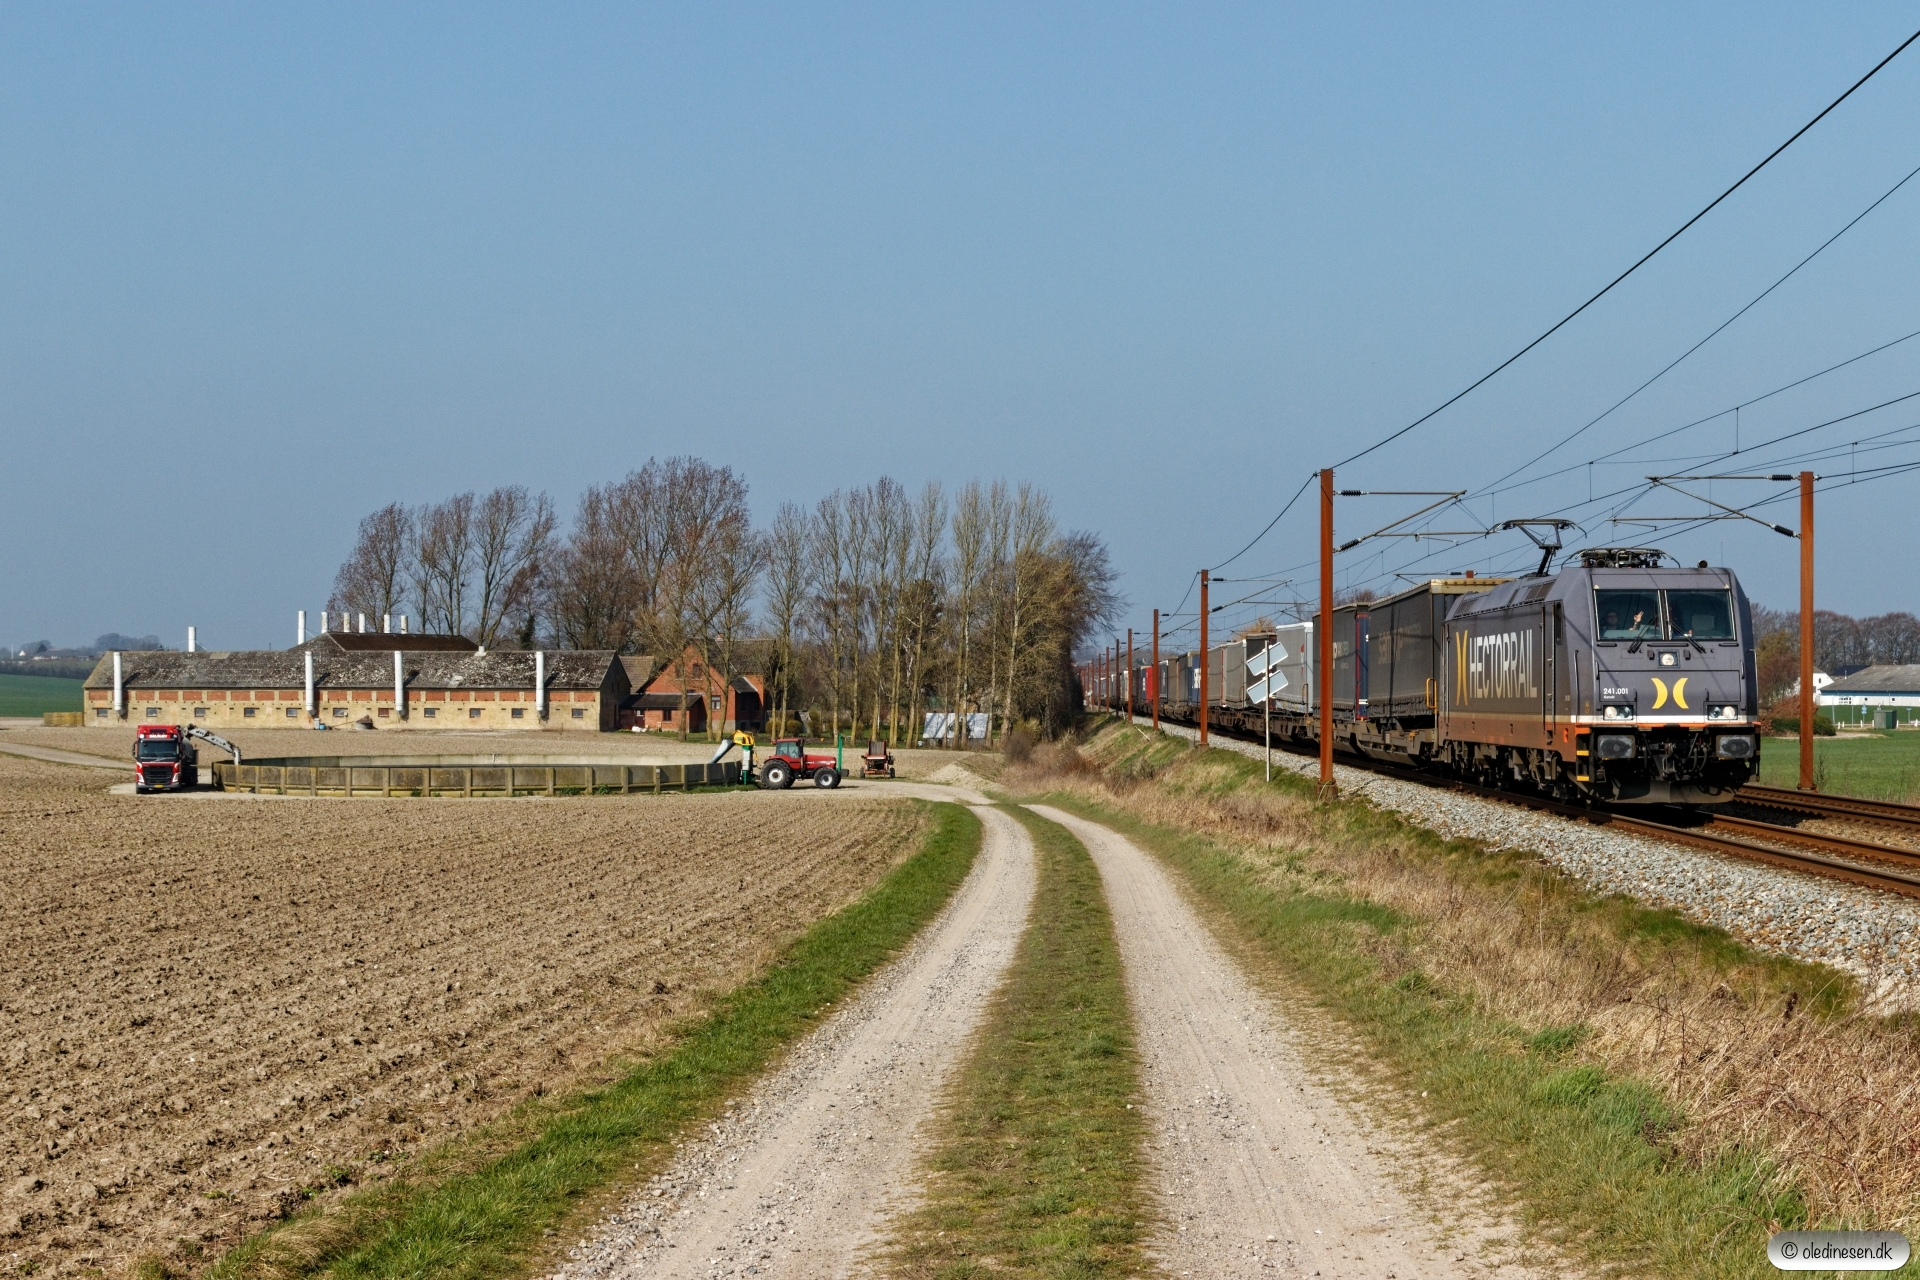 HCTOR 241.001 med HS 63210 Pa-Mgb. Km 193,0 Kh (Gelsted-Ejby) 30.03.2019.